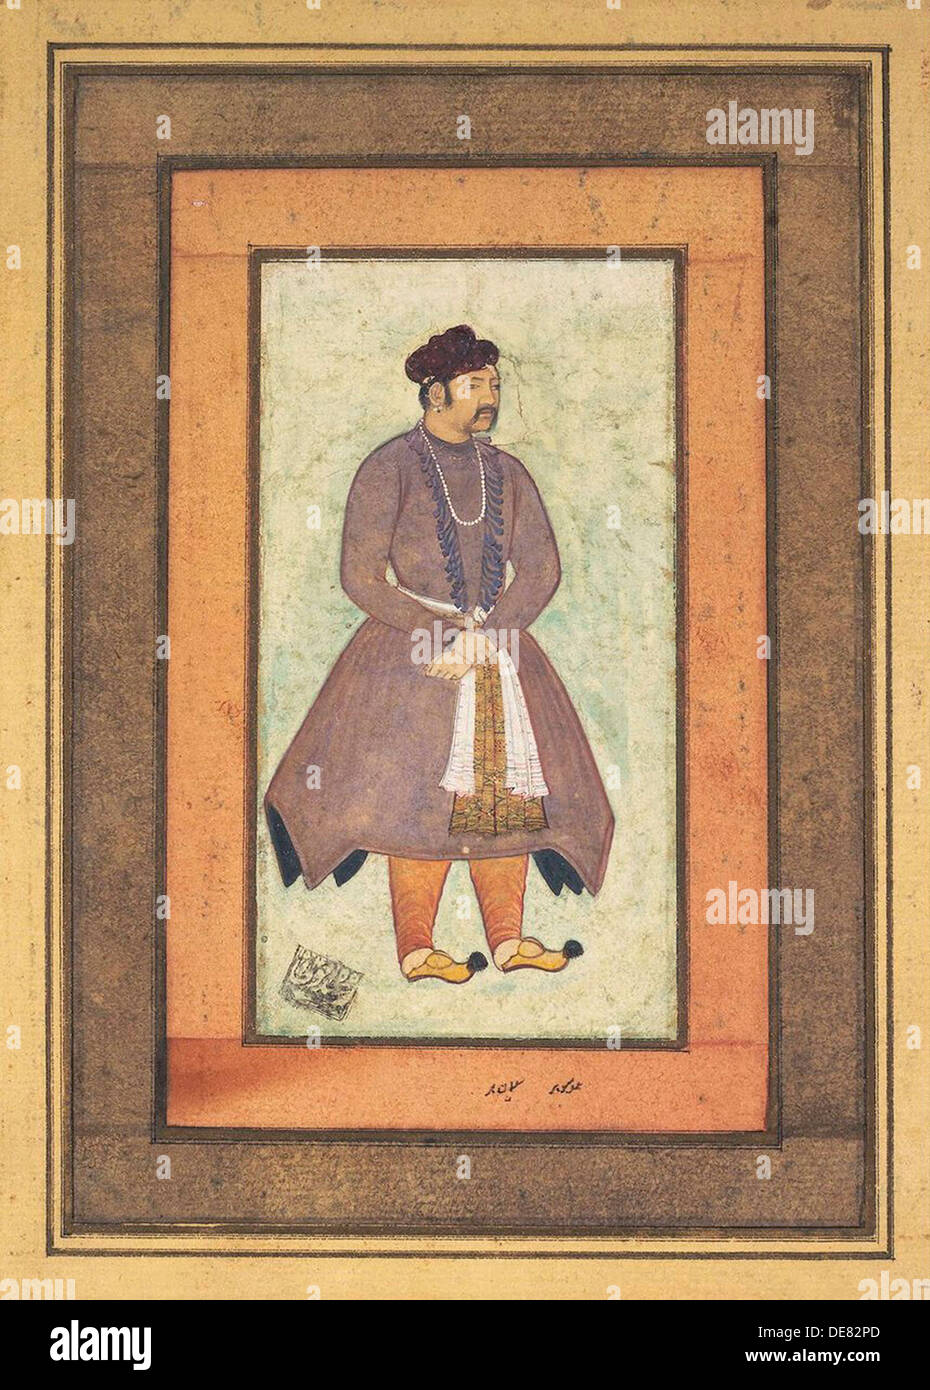 Portrait of Akbar the Great (1542-1605), Mughal Emperor, second half of the 16th century. - Stock Image